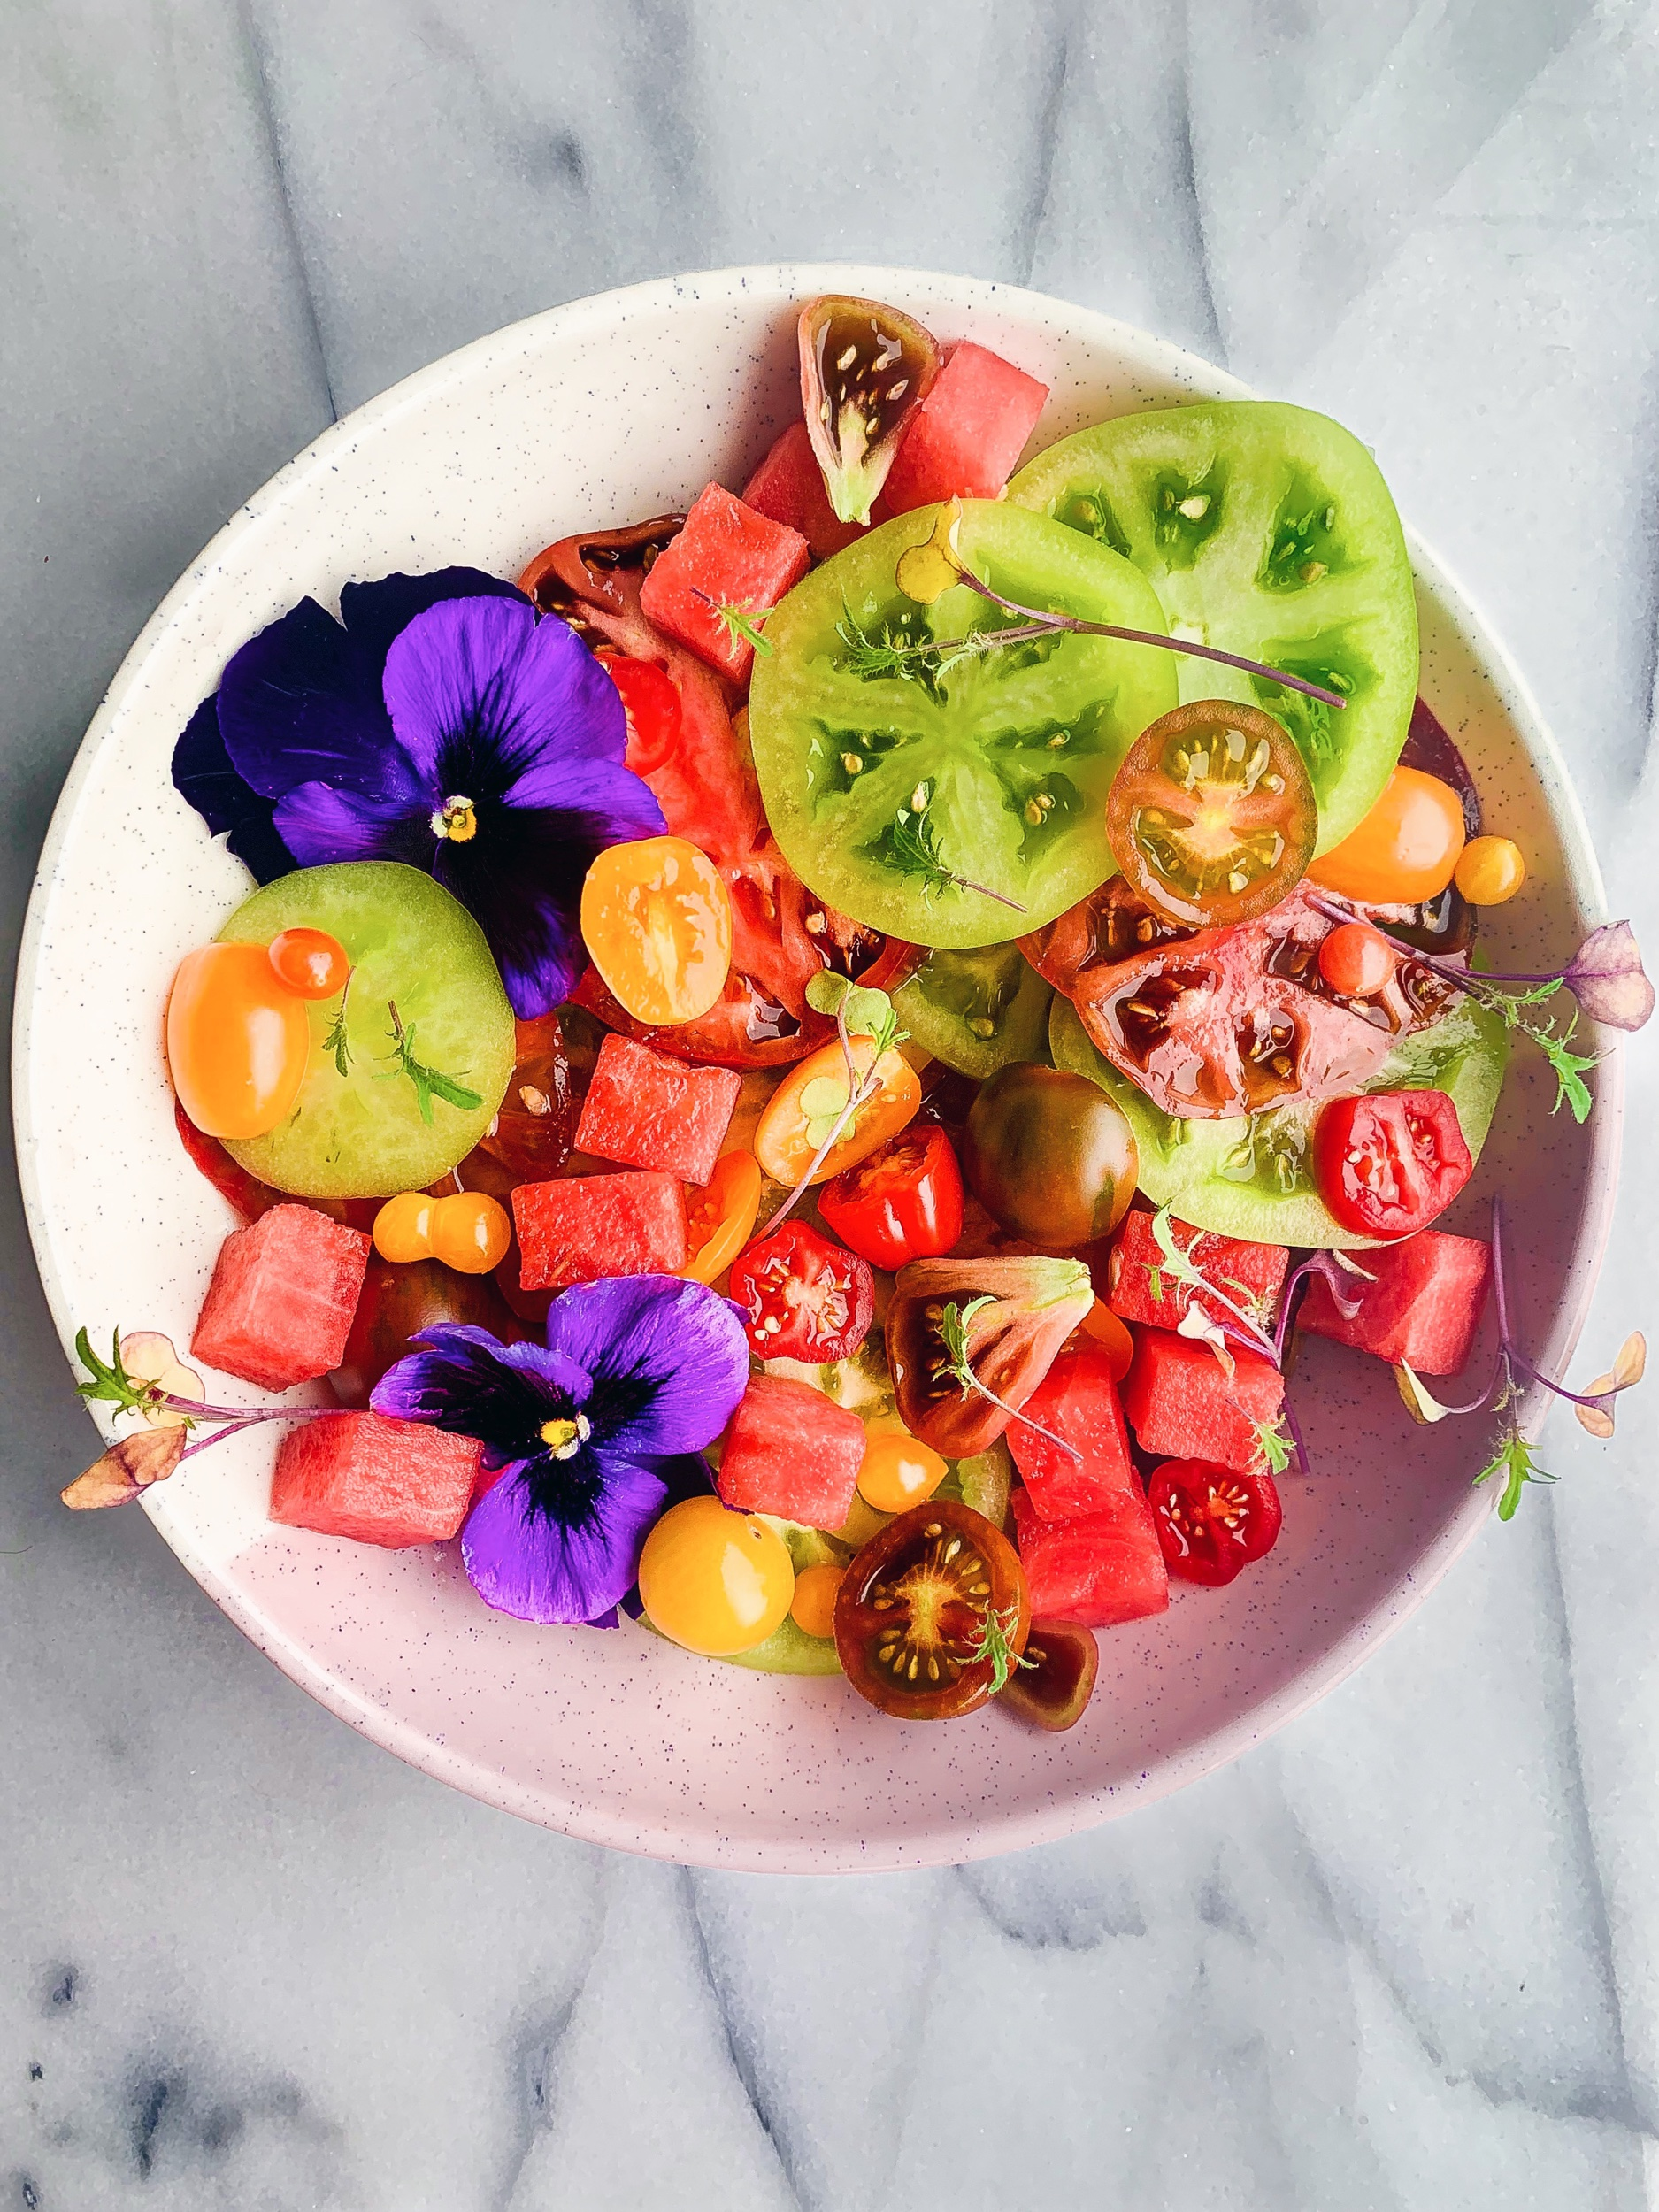 Watermelon Salad with Heirloom Tomatoes and Lime {Vegan, Gluten Free, Paleo} - This is my definition of summer in salad form! So simple and so delicious! #vegan #plantbased #glutenfree #dairyfree #paleo #healthy #watermelon #eathealthy #summereats #whole30